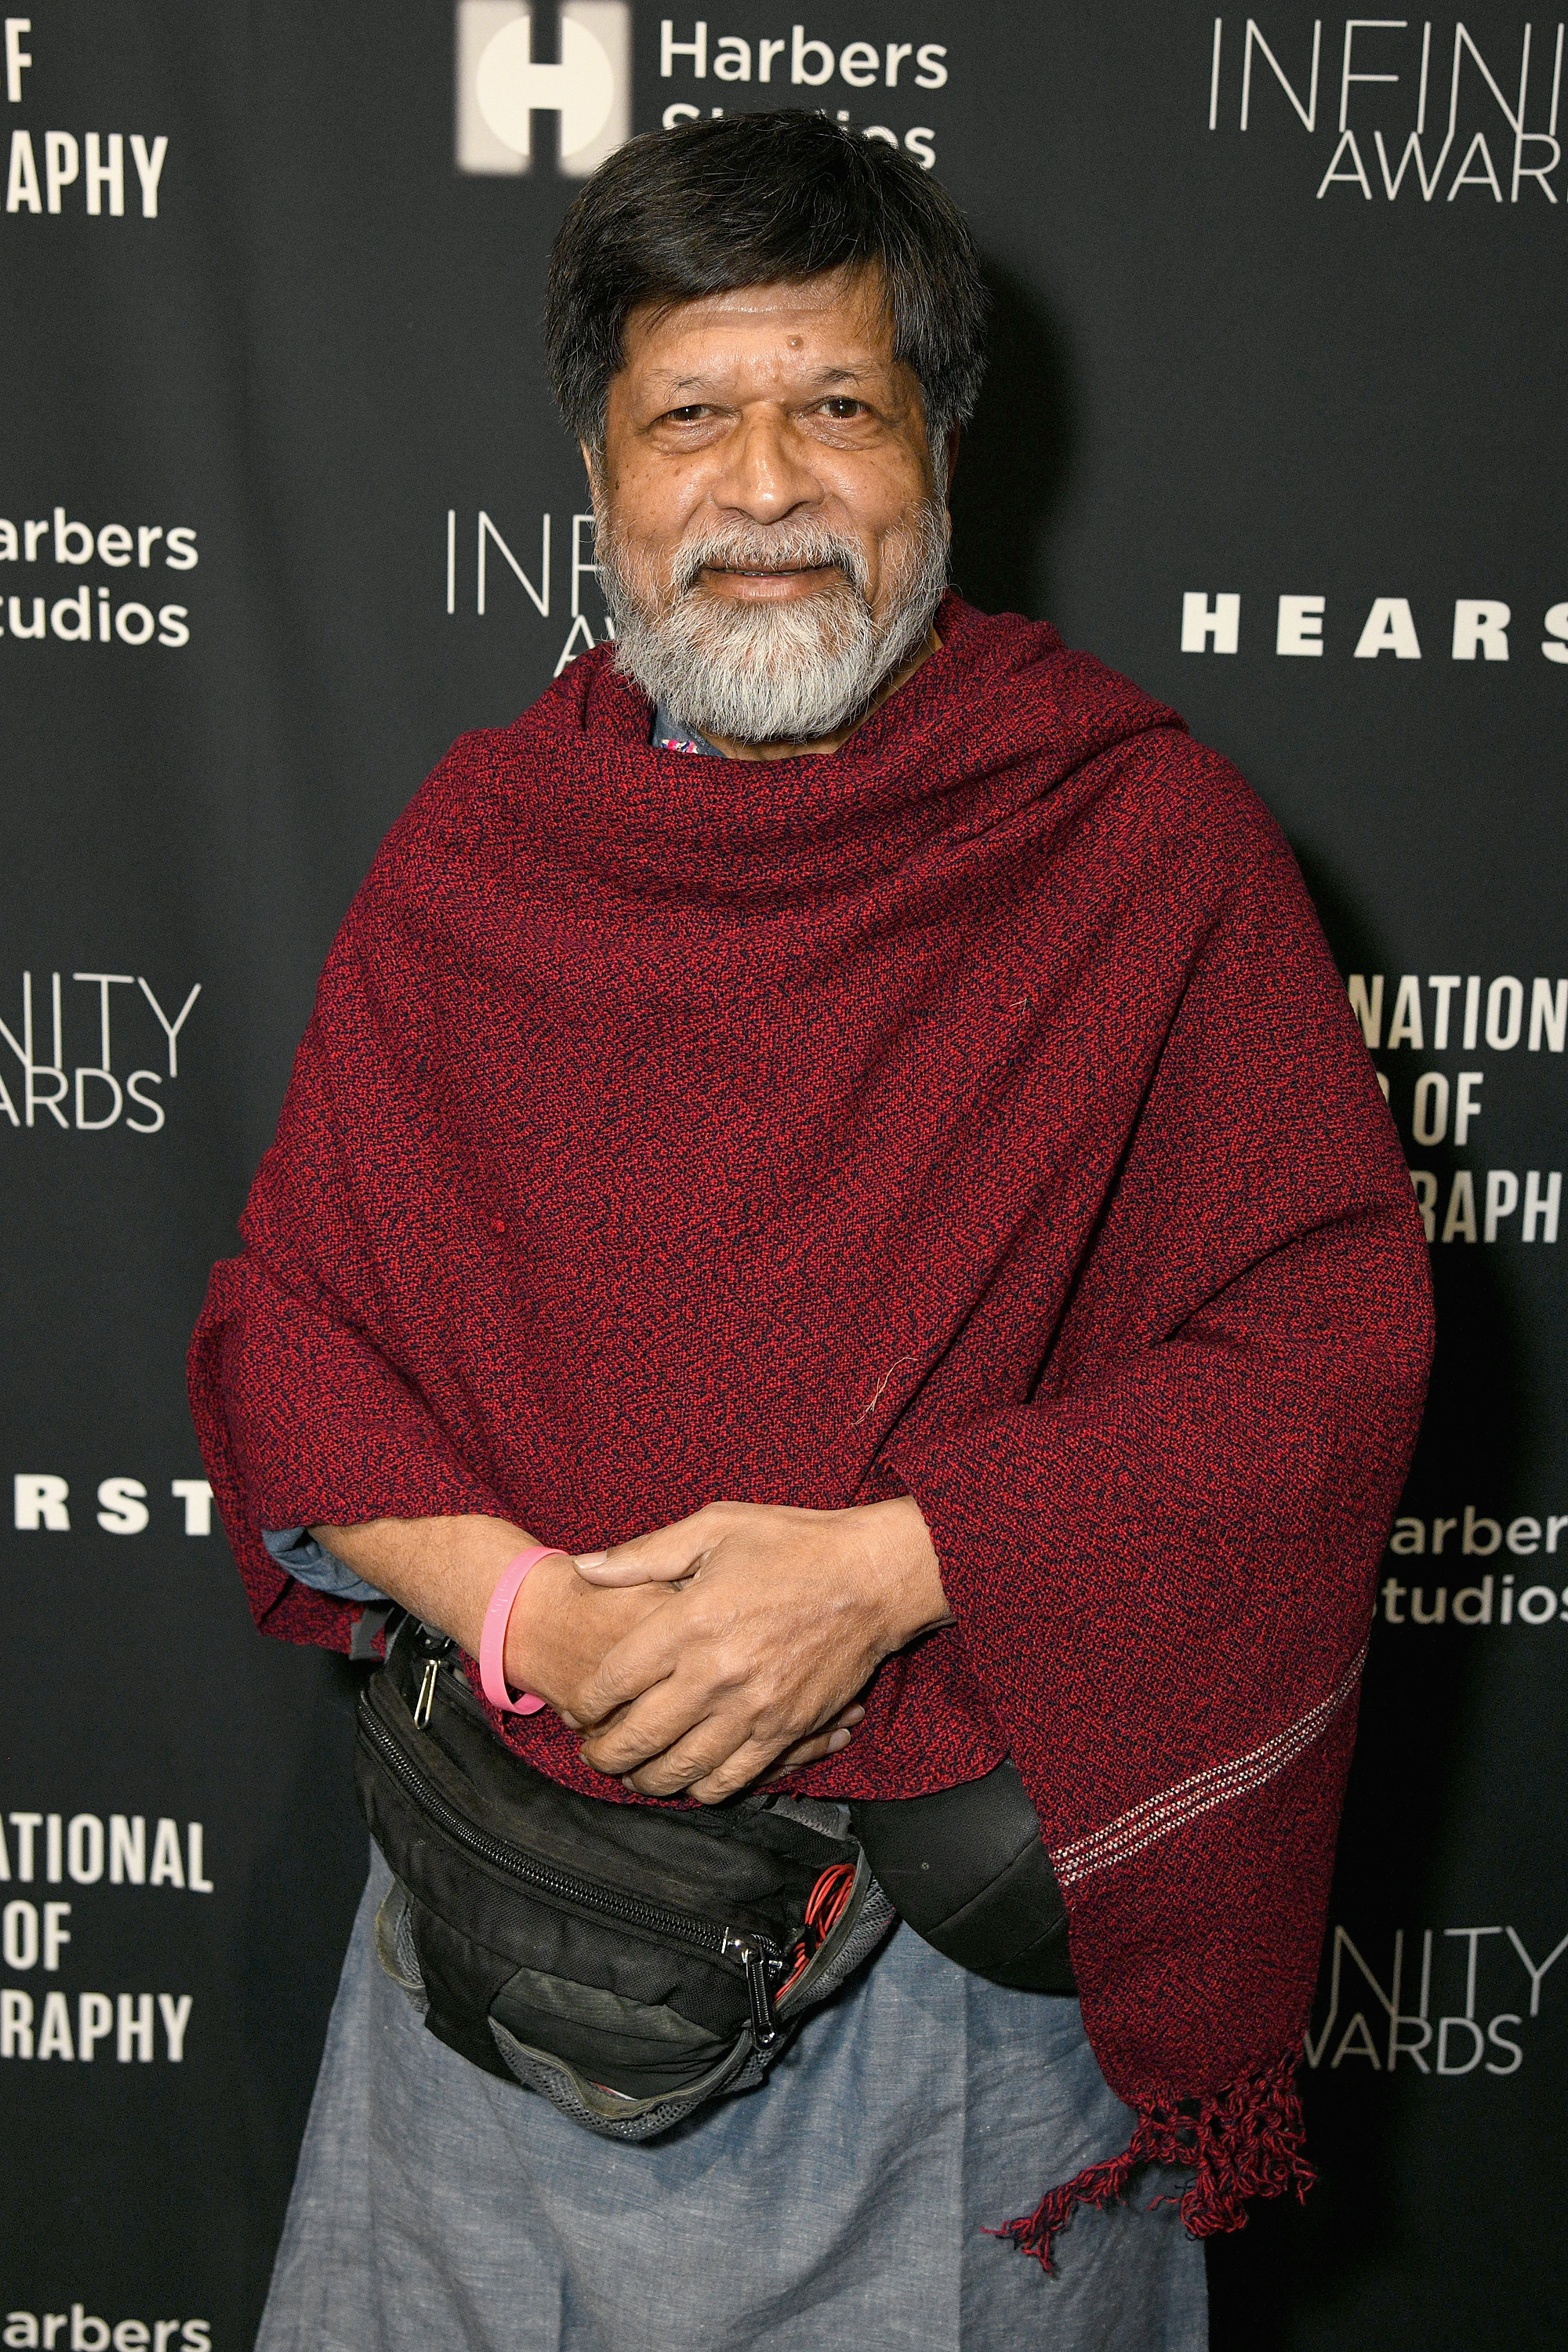 NEW YORK, NY - APRIL 02: Honoree and photographer Shahidul Alam attends The International Center Of Photography's 35th Annual Infinity Awards at The Ziegfeld Ballroom on April 2, 2019 in New York City. (Photo by Bryan Bedder/Getty Images for International Center of Photography)